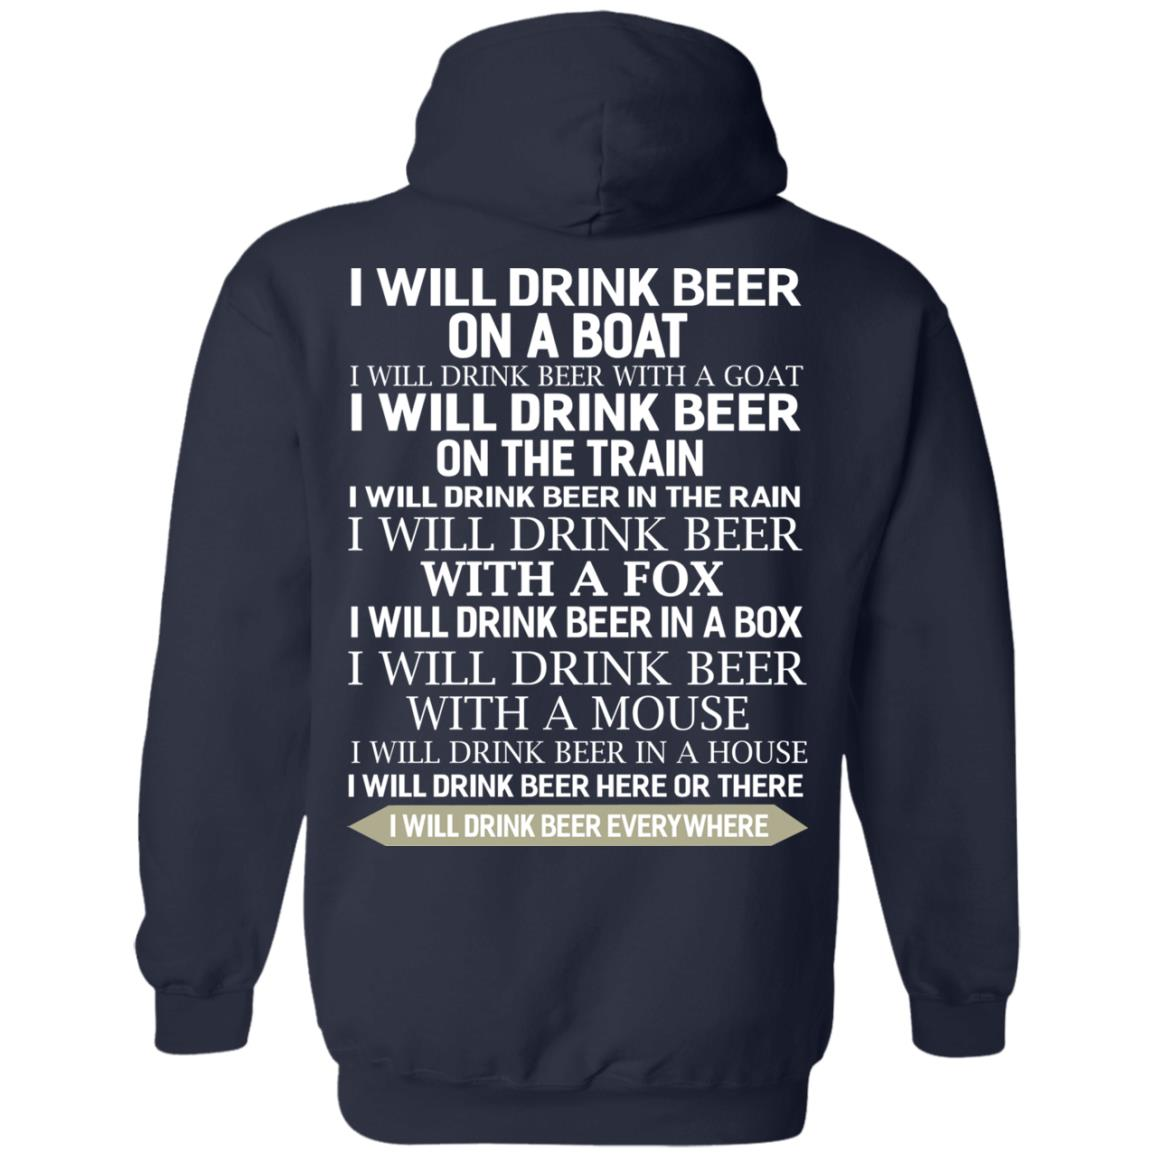 image 319 - I Will Drink Beer On a Boat I Will Drink Beer With a Goat Shirt